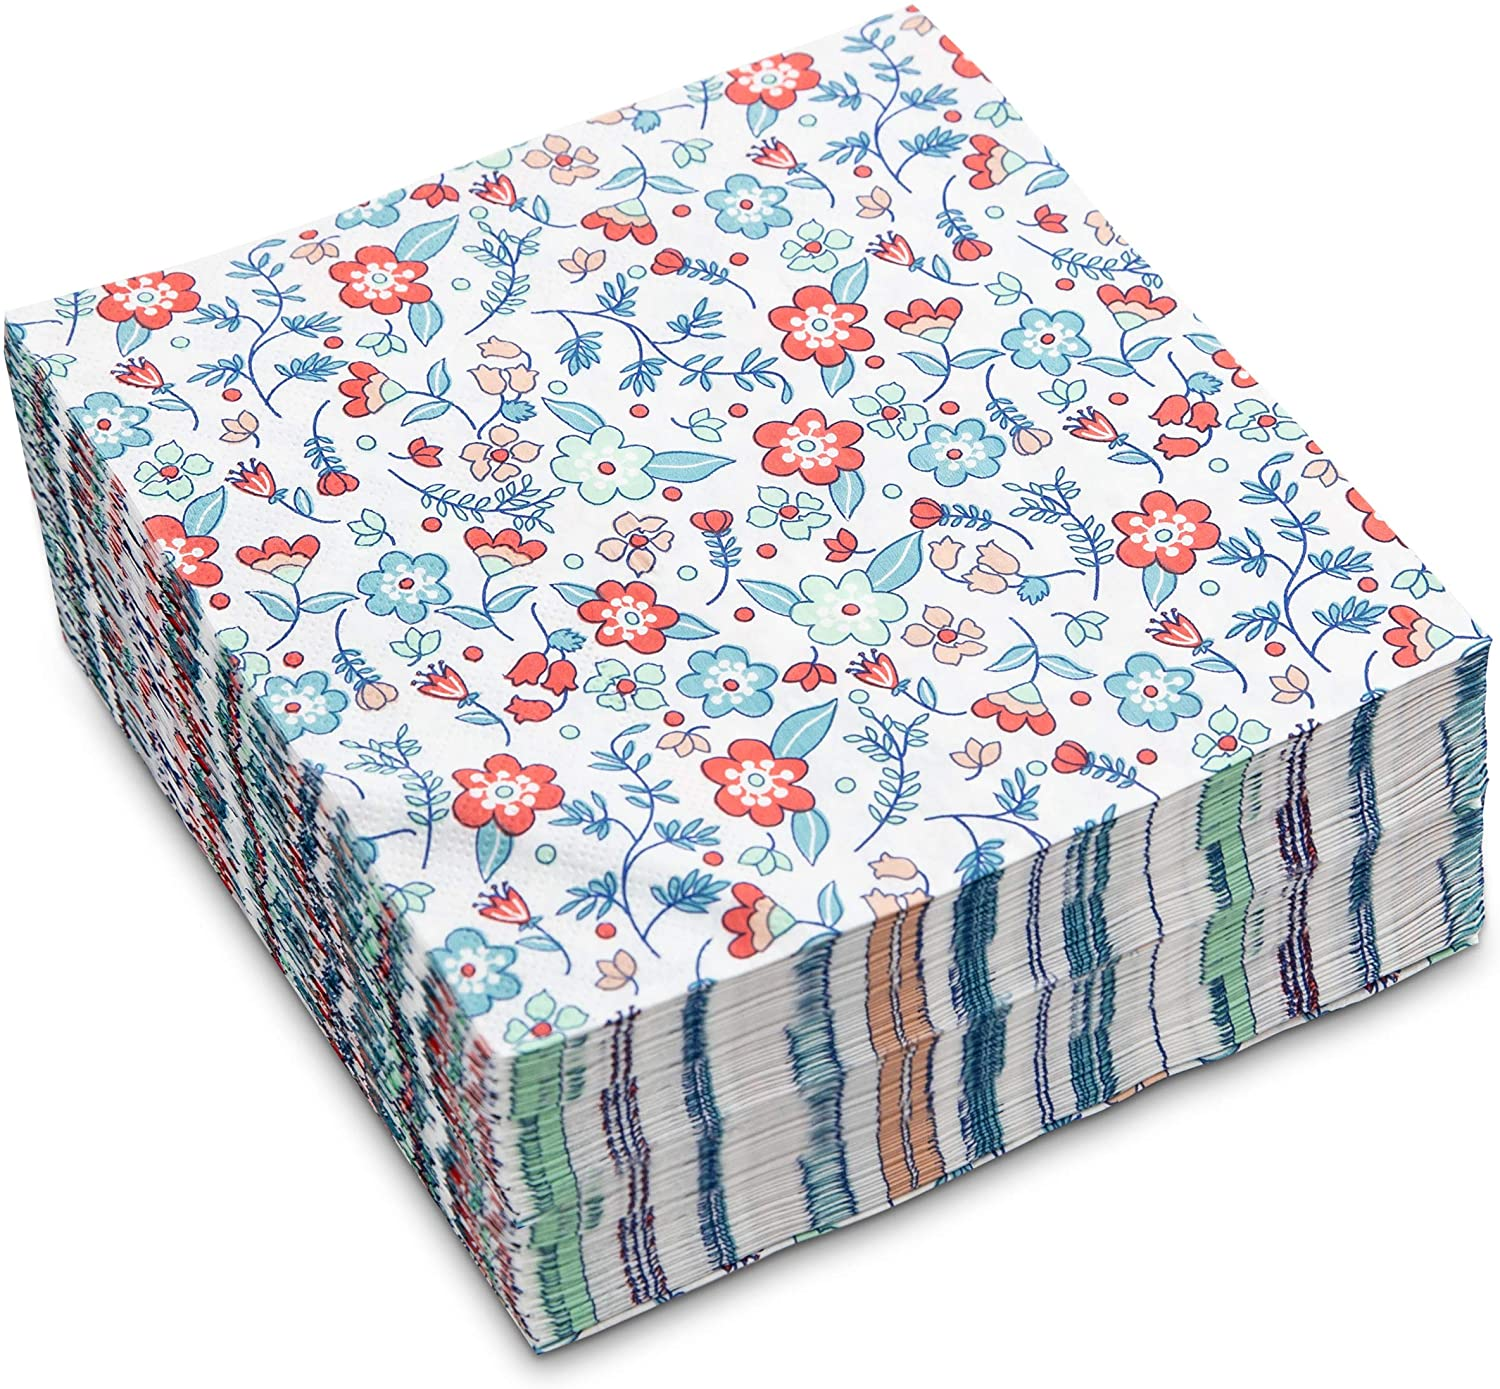 Sweetzer & Orange Lunch Napkins Bulk Set of 40. White Napkins with Liberty Flower. 6.5 x 6.5 Inch (Folded) Party Napkins. Soft 2-Ply Eco Disposable Paper Napkins for Dessert, Cocktail or Wedding